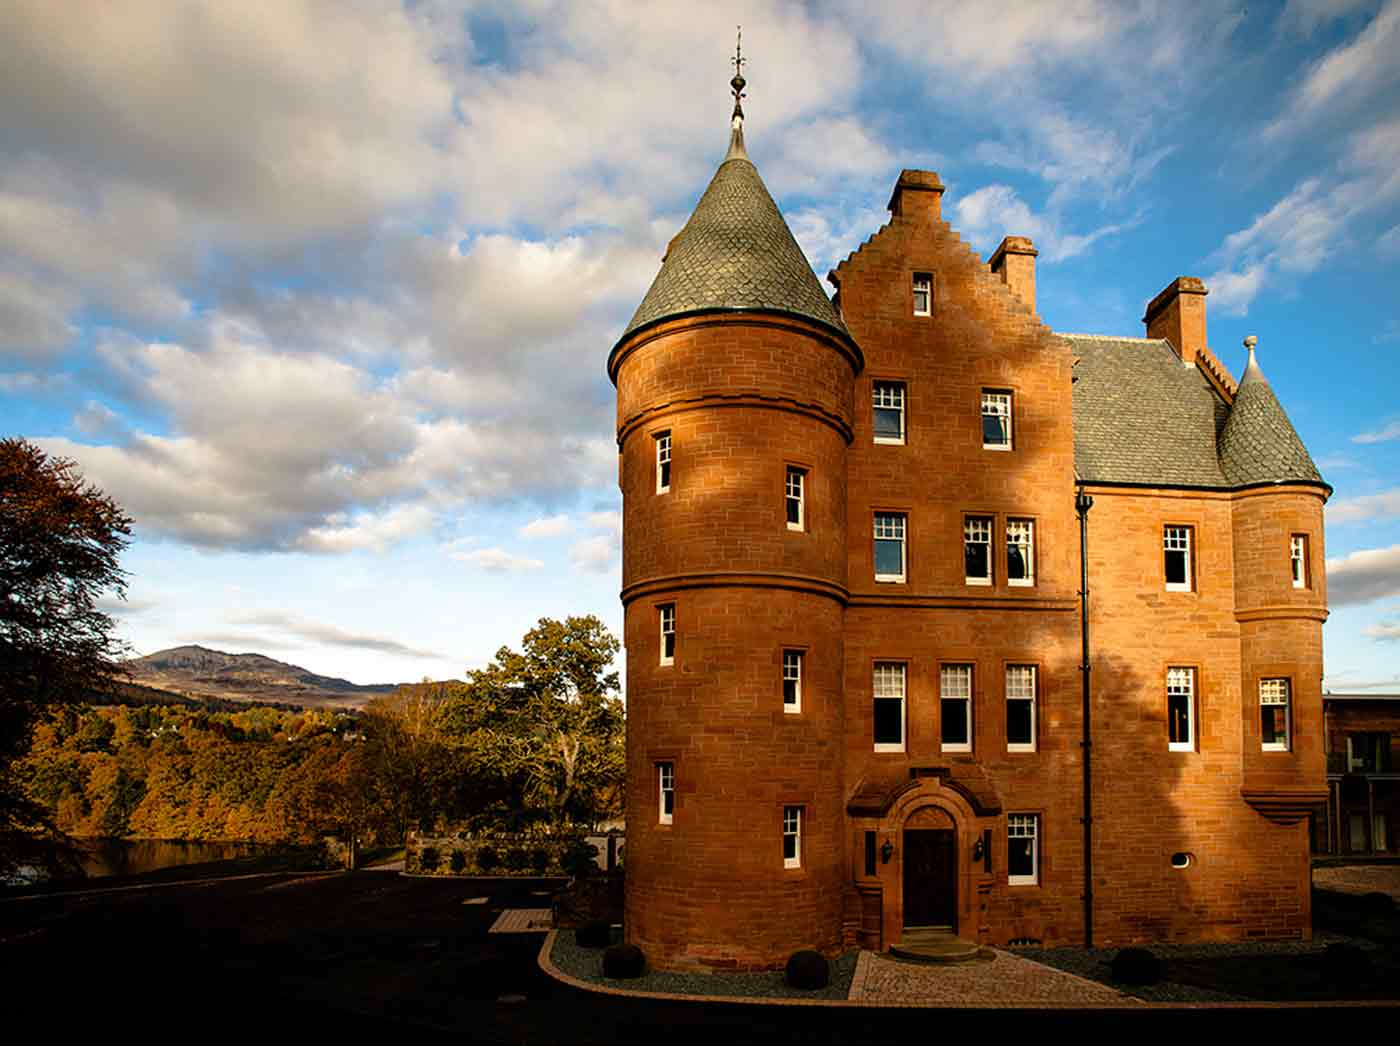 This is the magnificent Fonab Castle overlooking Loch Faskally in Pitlochry Perthshire